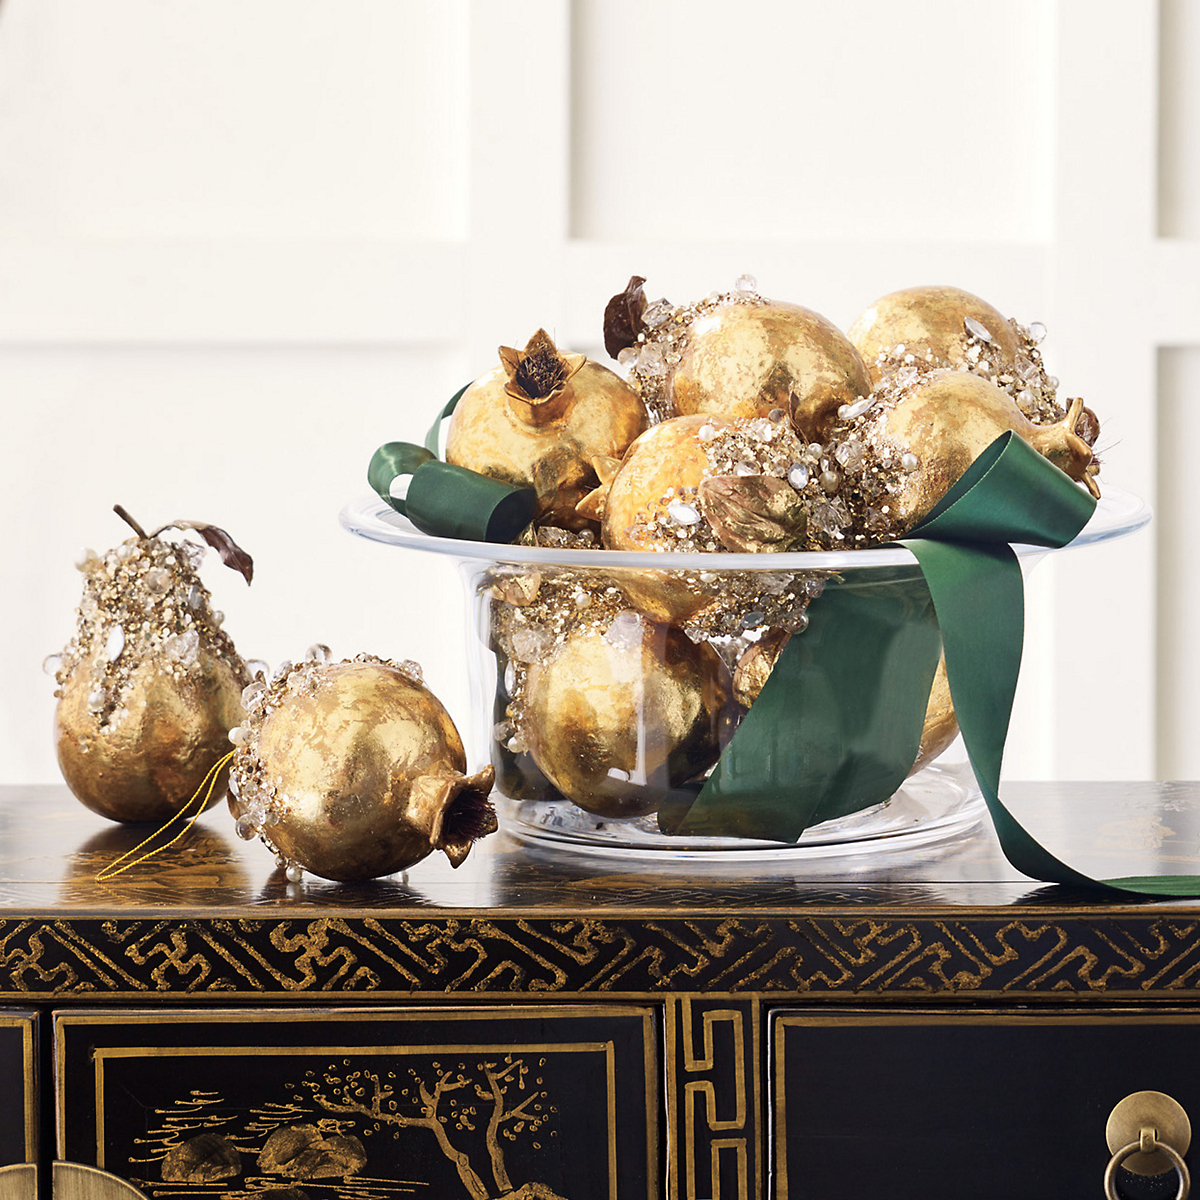 Bejeweled Pomegranate & Pear Ornaments